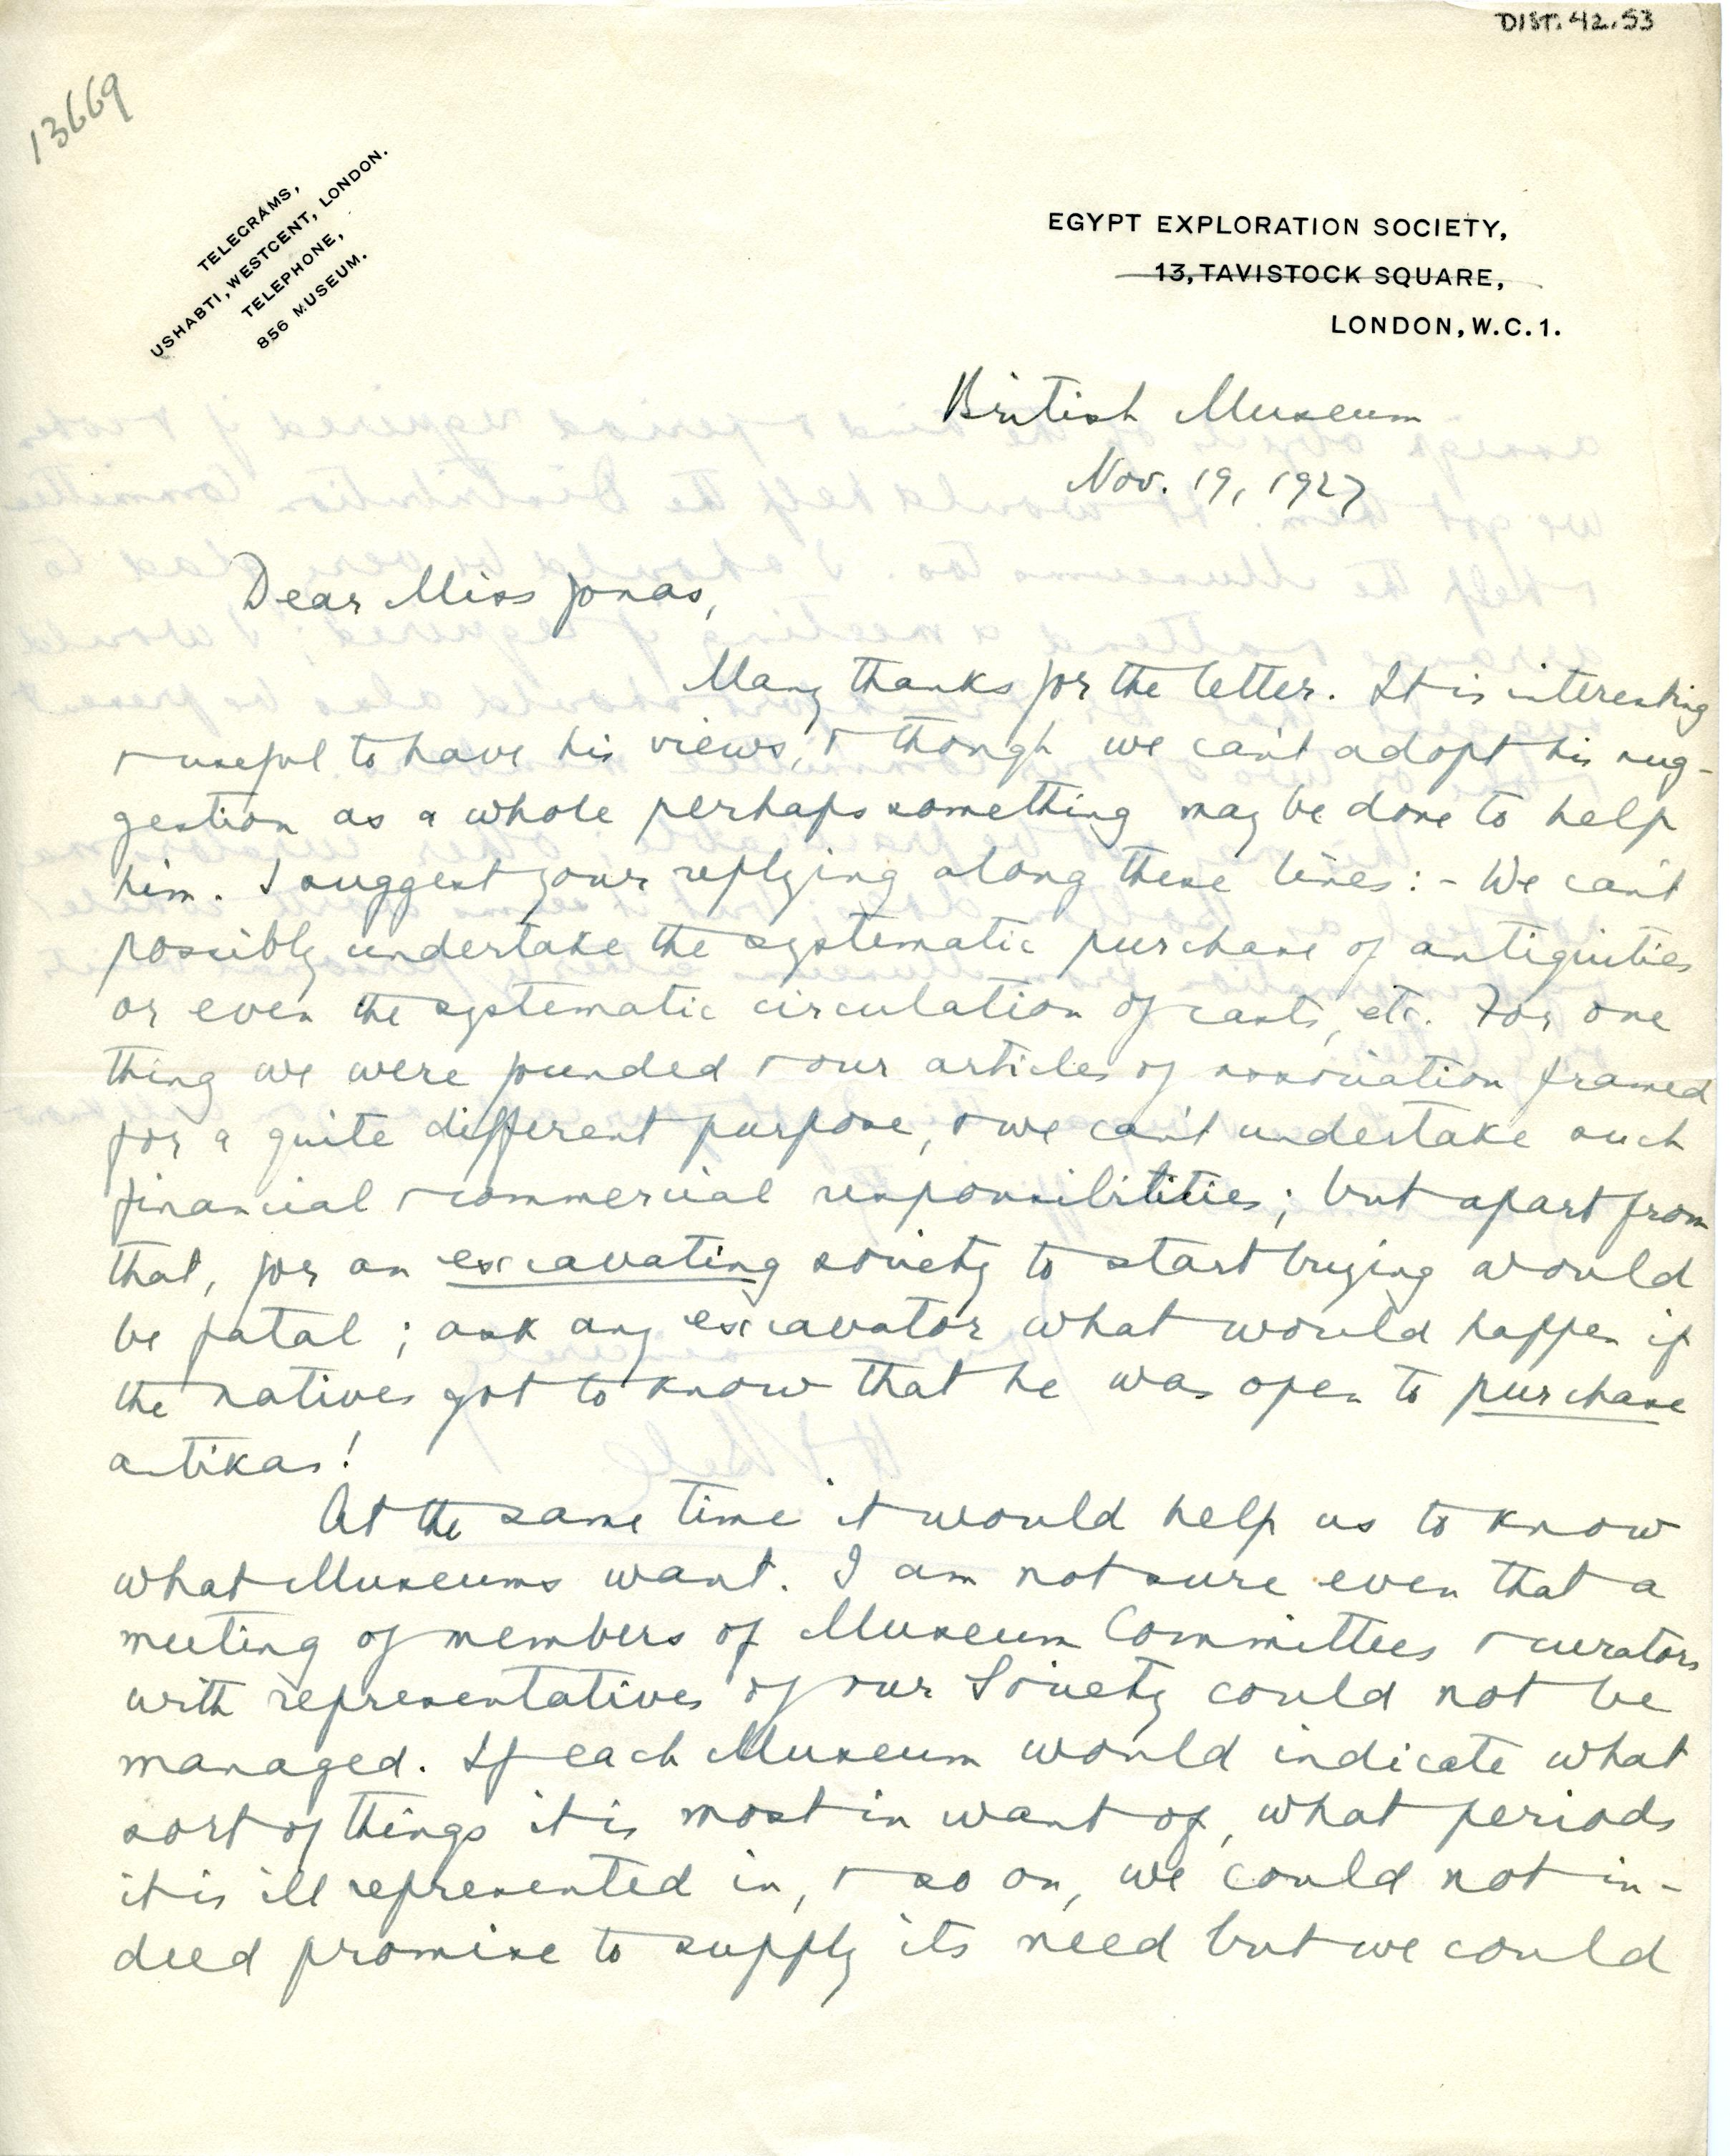 1922-71 Miscellaneous correspondence with museums DIST.42.53a